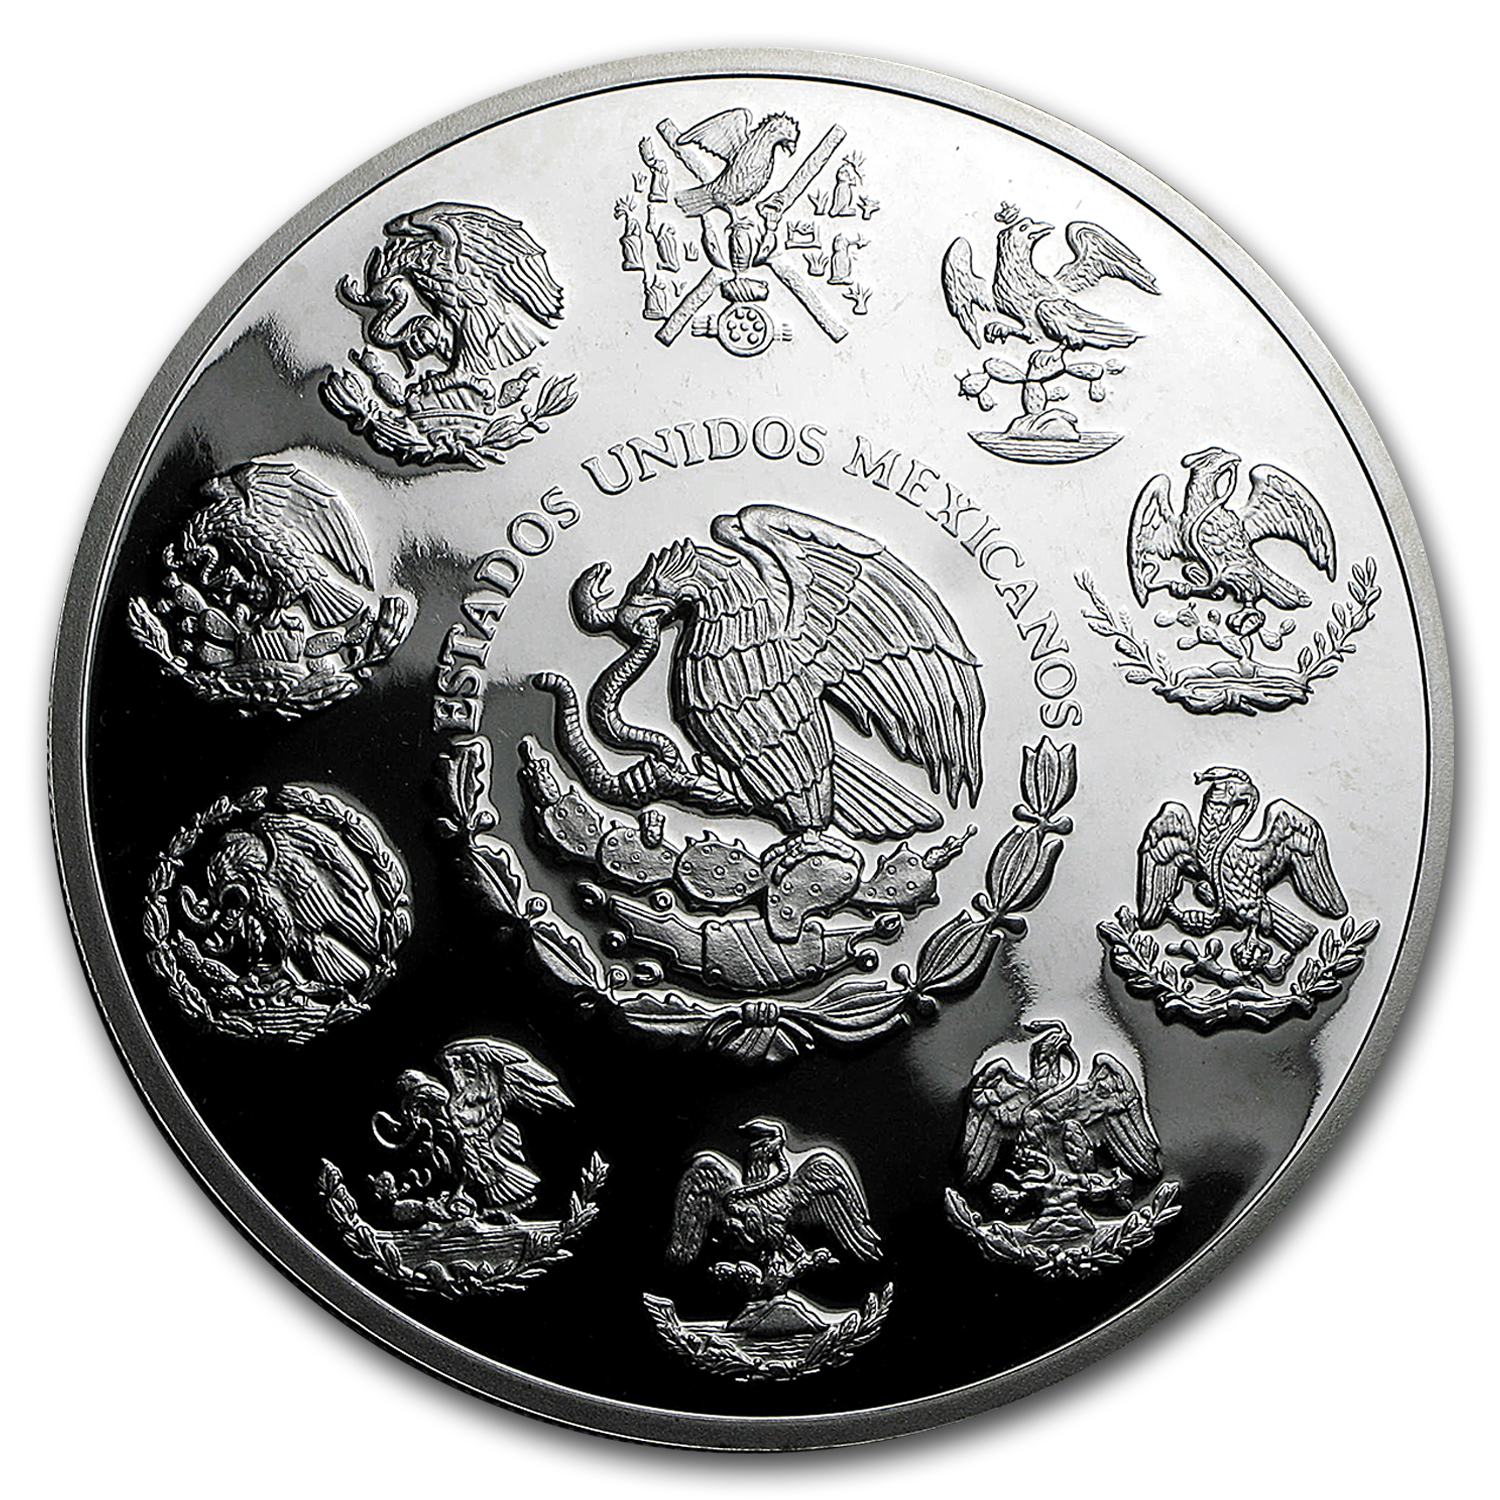 2010 Mexican 5 oz Silver Libertad Proof (In Capsule)